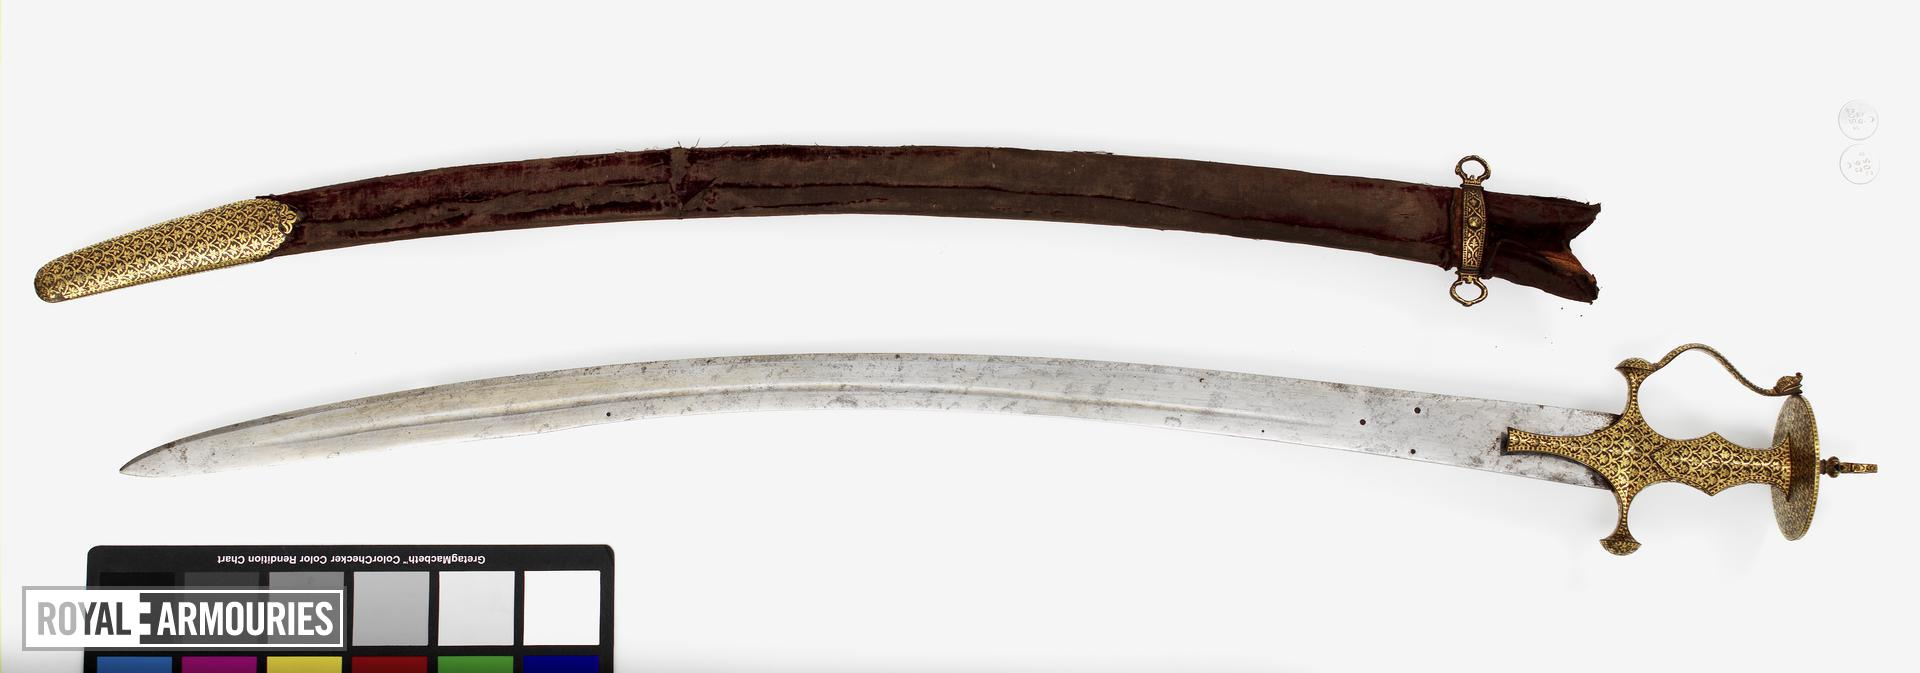 Sword (talwar) and scabbard possibly for one of the Nizams of Hyderabad.